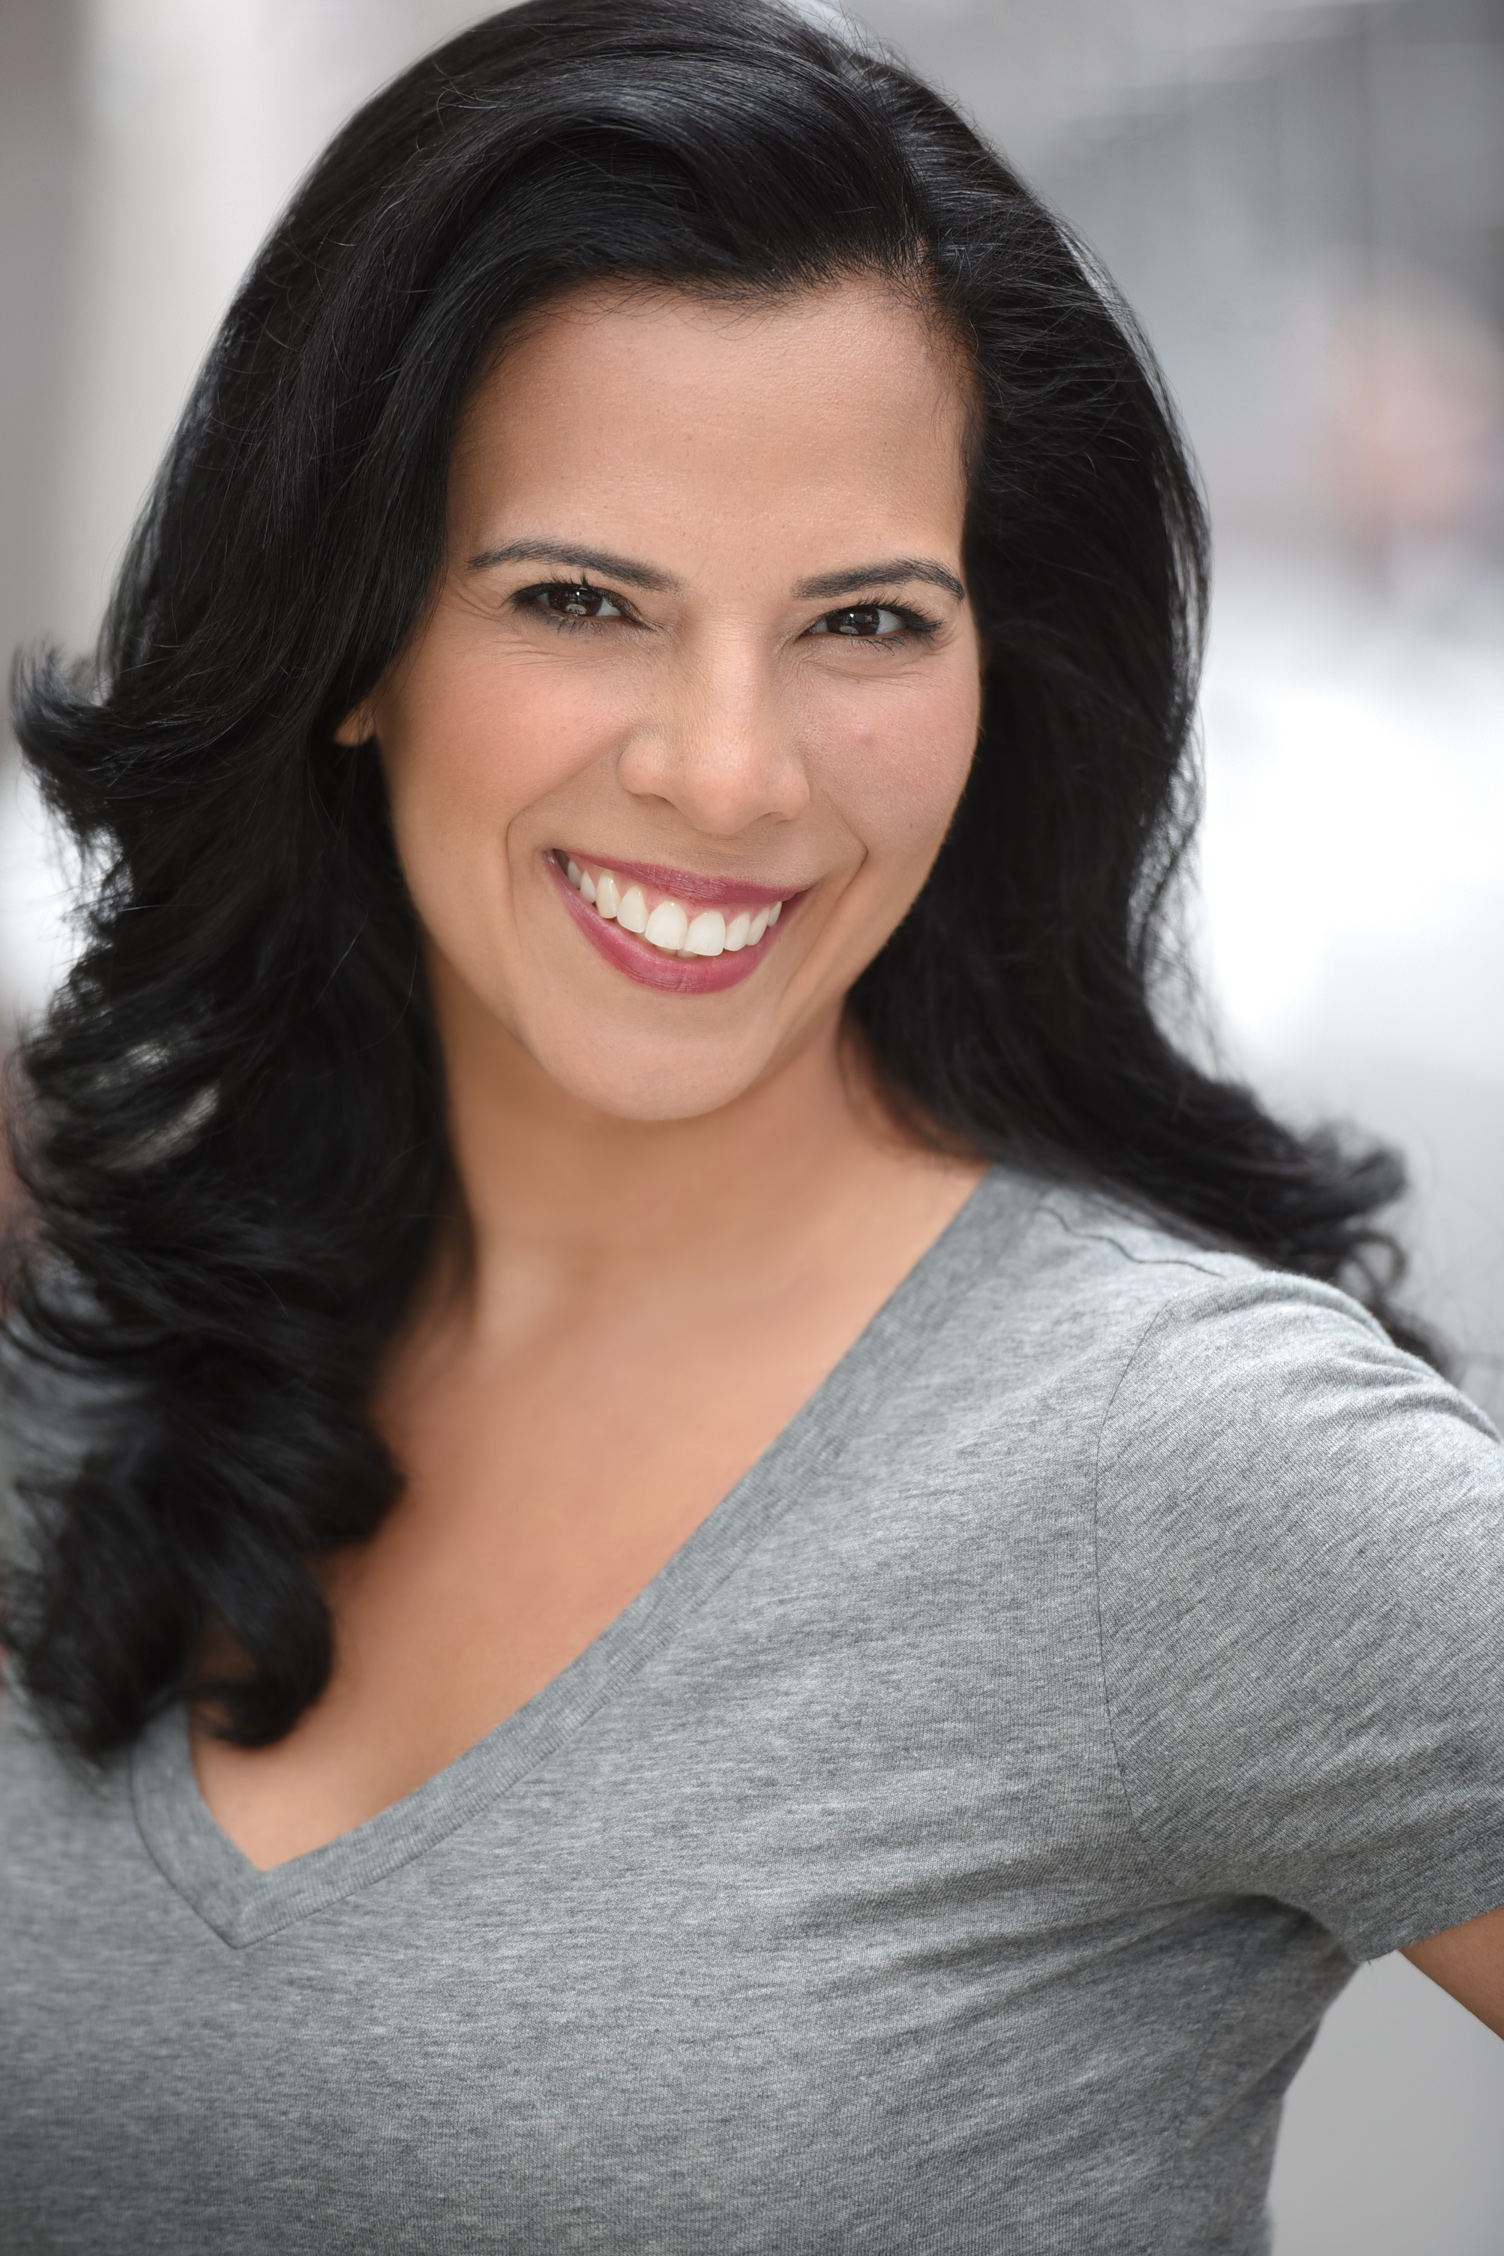 about Lorraine - Actor, Producer. Theatre, Film, Television. These words, when used in reference to Lorraine Rodriguez-Reyes, describe creative pathways on which a consummate artist can relentlessly pursue her passion. Lorraine received her MFA from Harvard's American Repertory Theatre (A.R.T.)/Moscow Art Theatre Institute for Advanced Theatre Training.